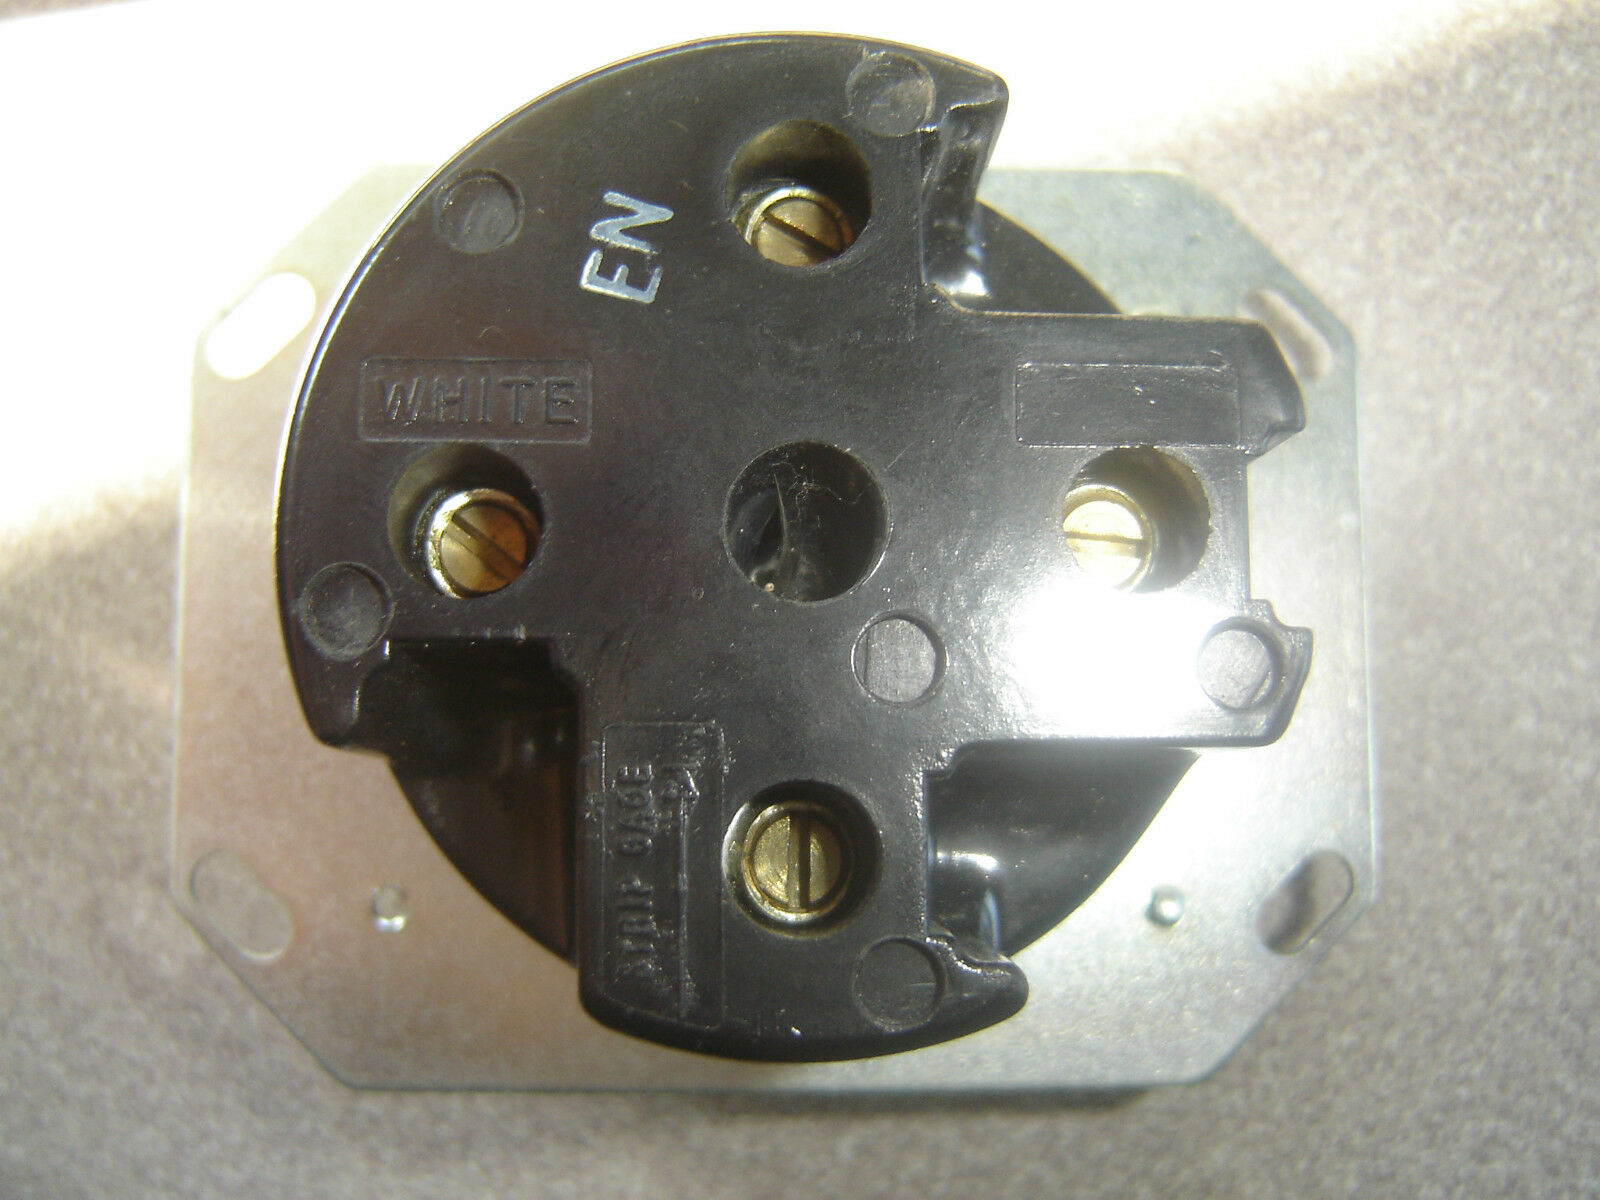 One NOS Hubbell Bryant HBL8330A AC Receptacle NEMA 18-30 3 Phase Y 120//208V 30A